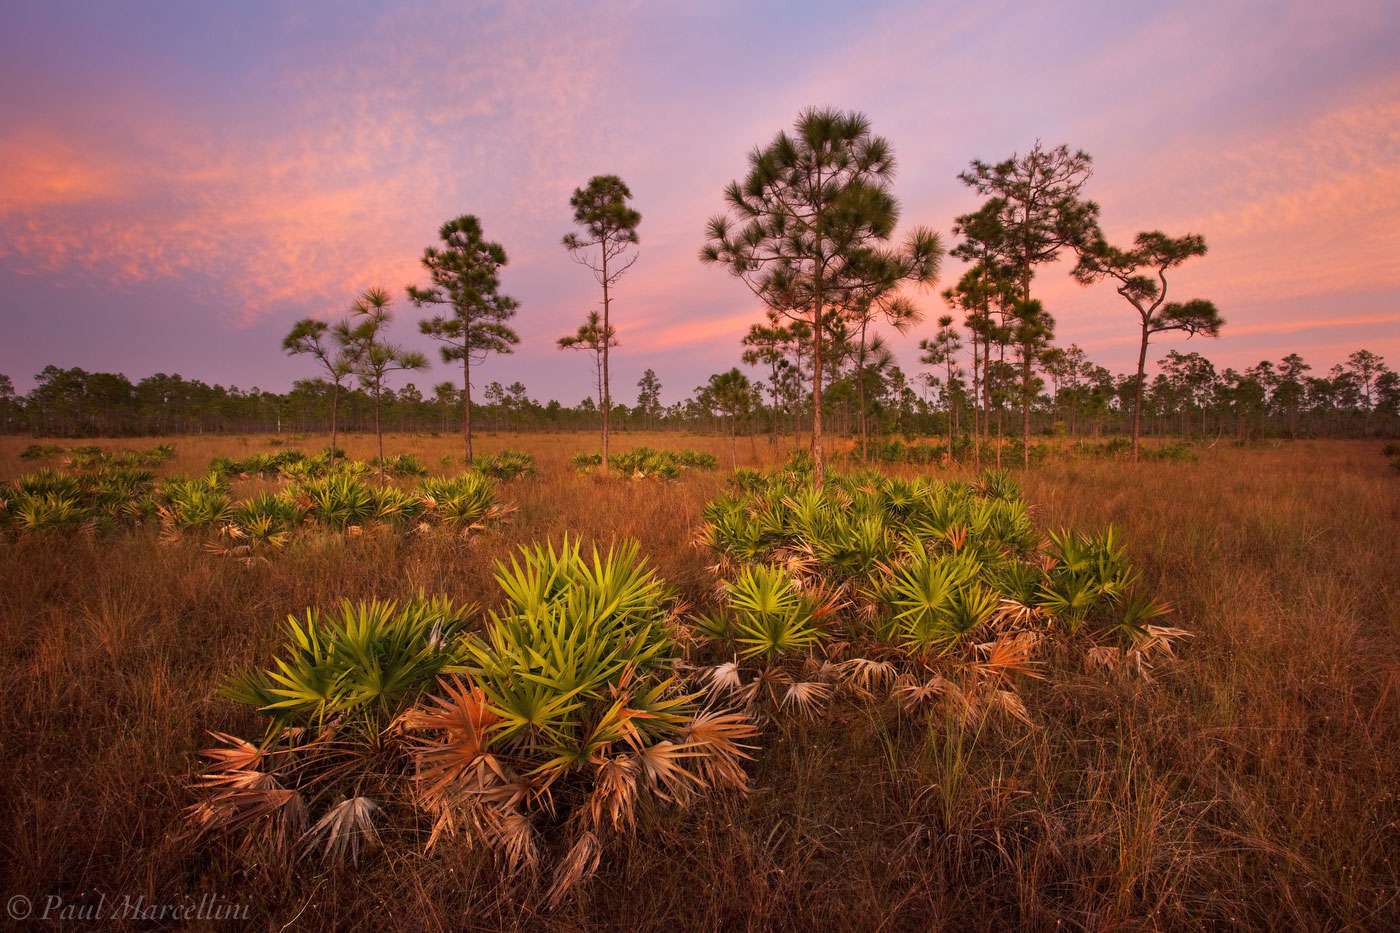 sunset, everglades, rocky pinelands, Florida, nature, photography, florida national parks, photo